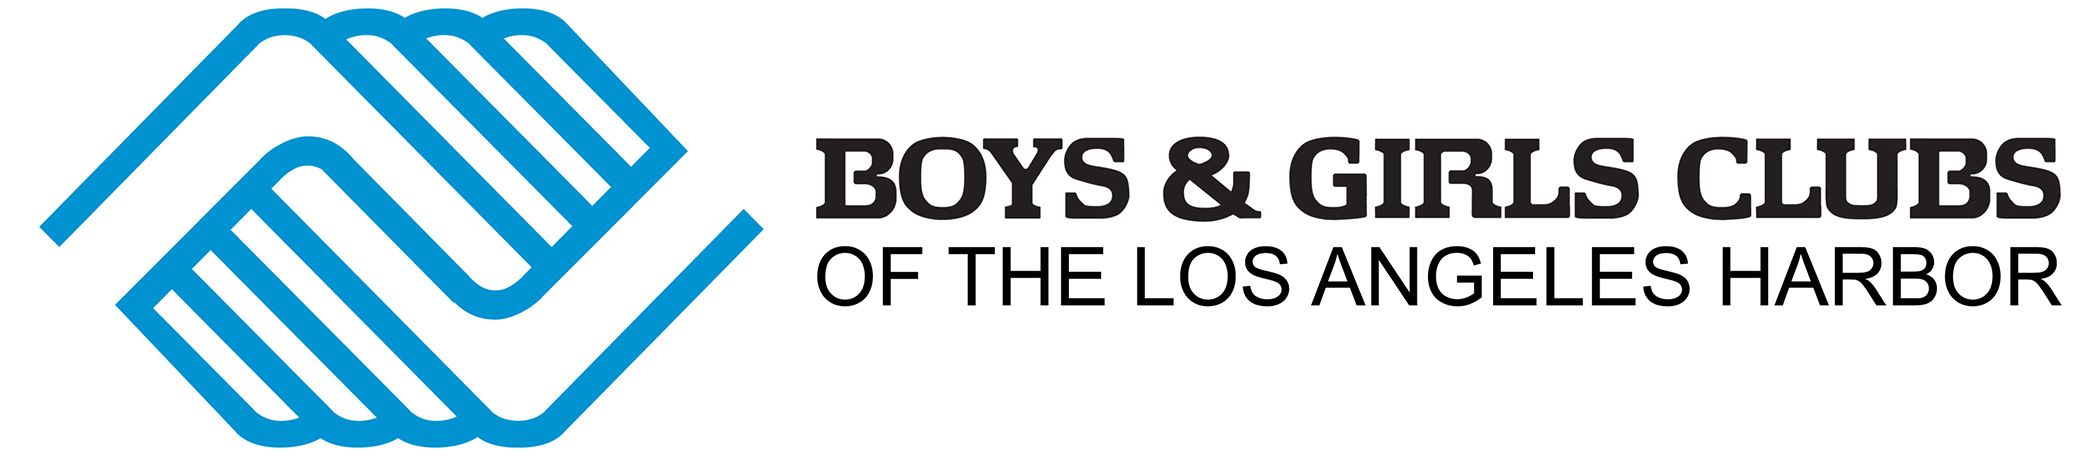 Boys & Girls Clubs of the Los Angeles Harbor Logo